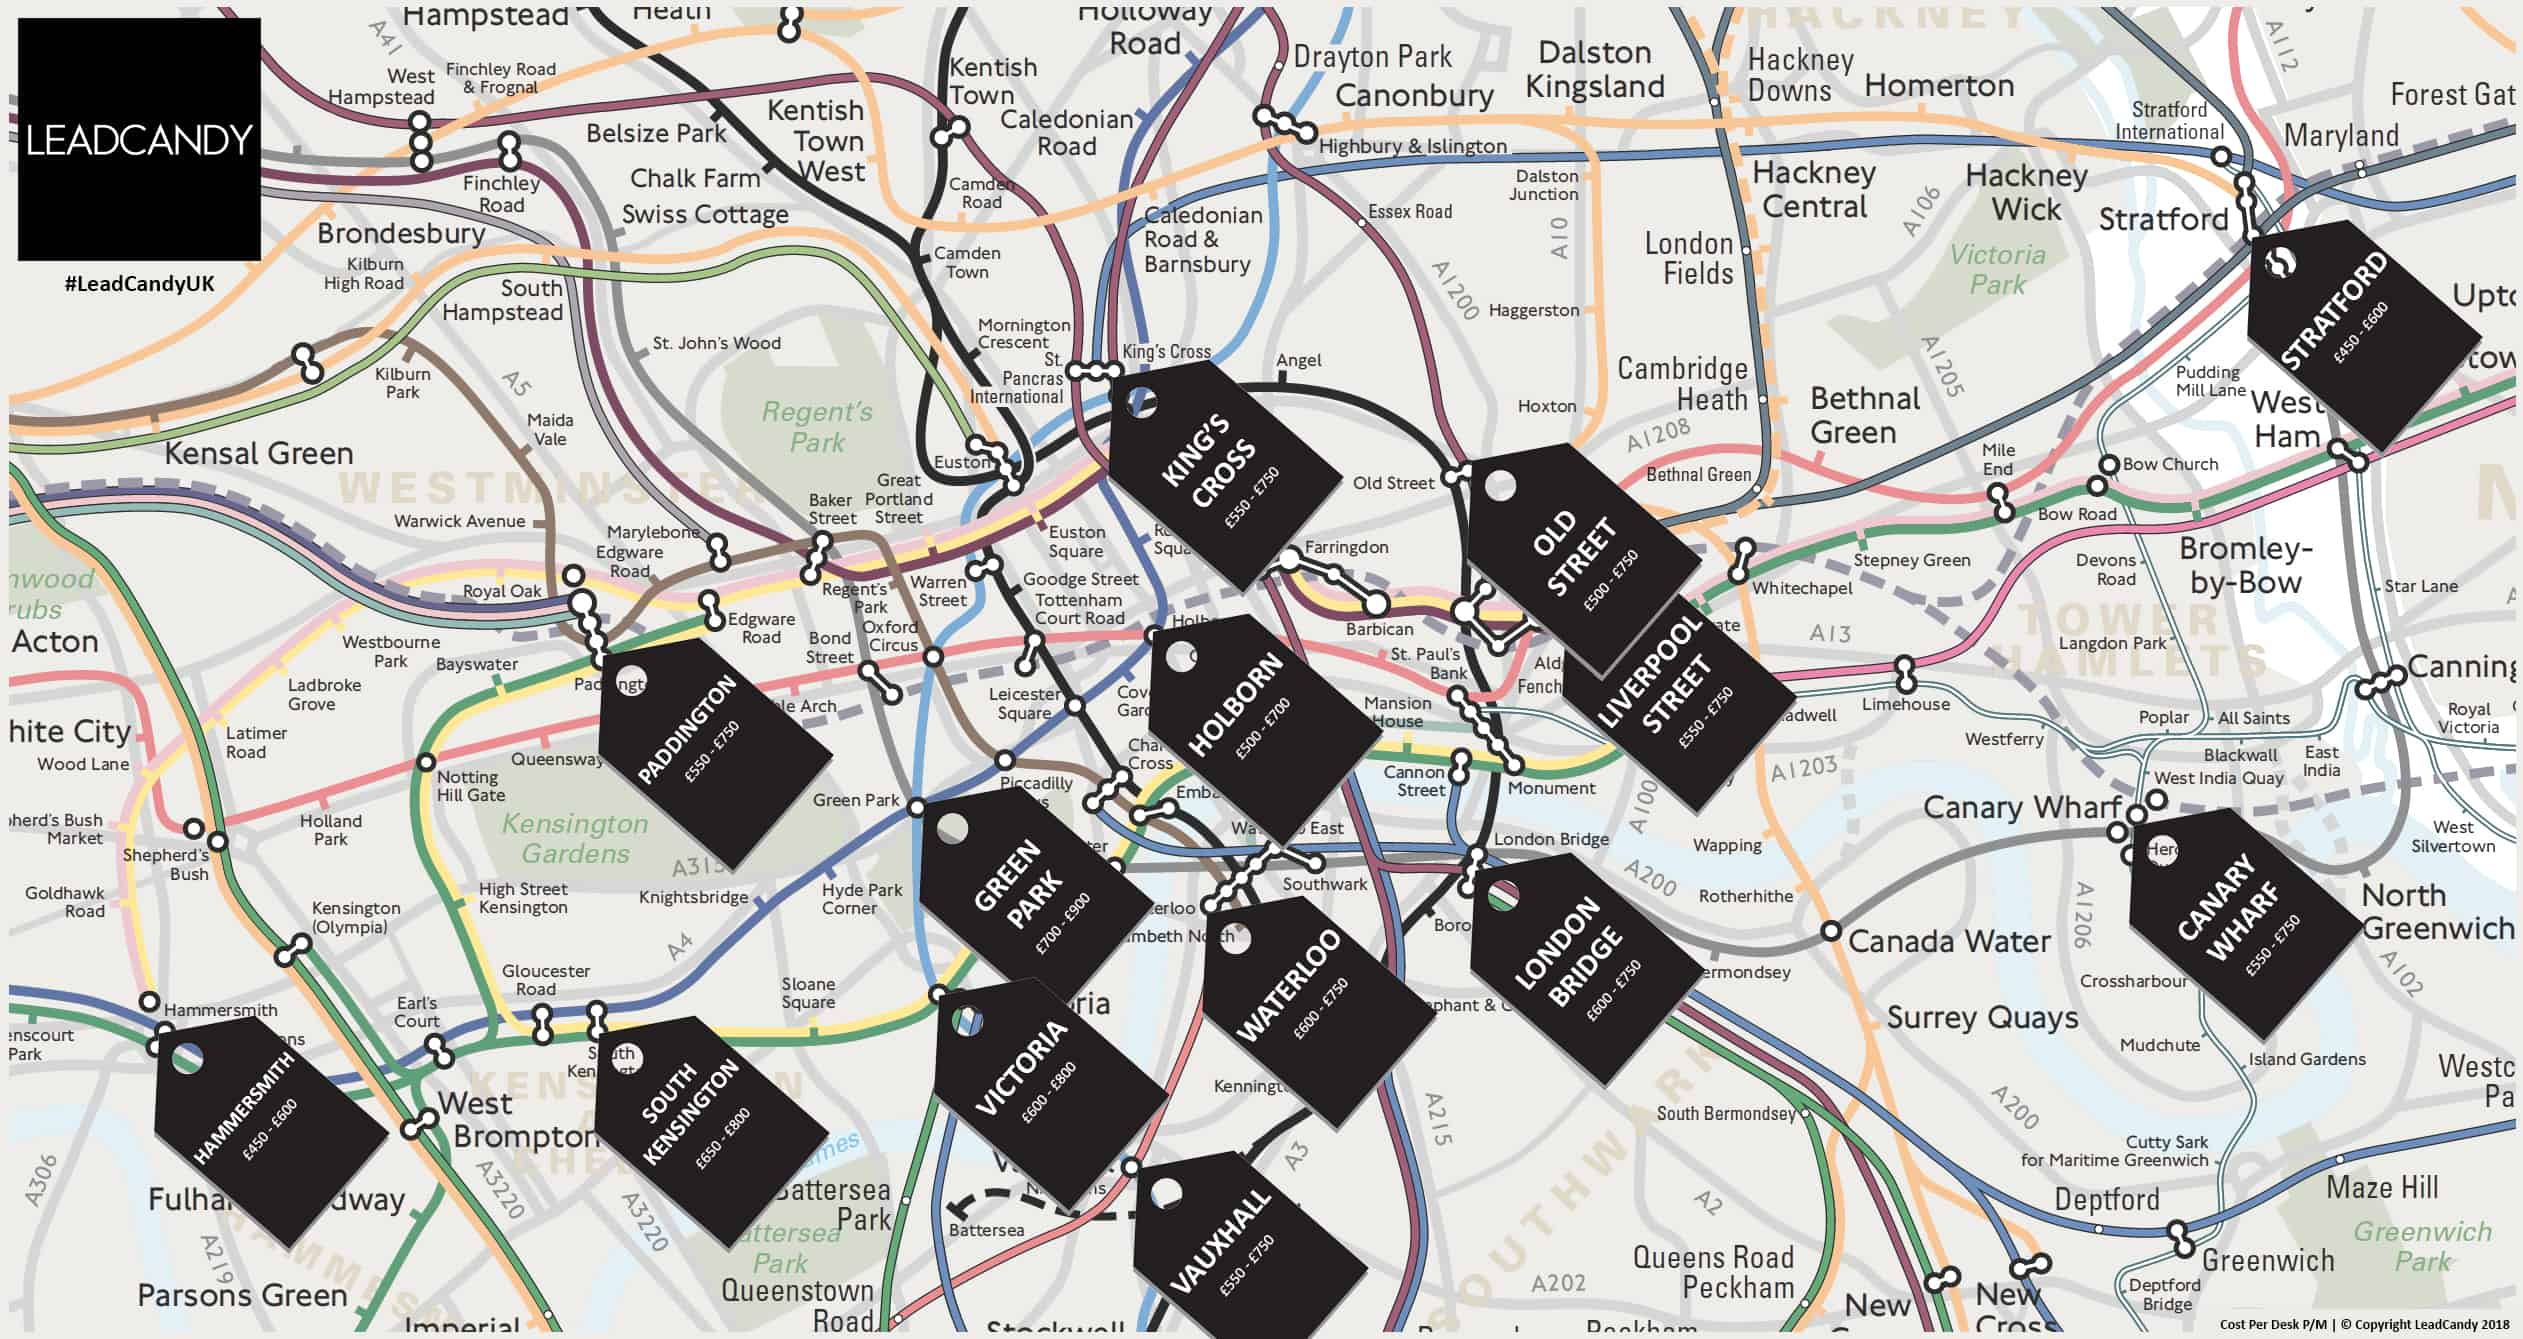 Approximate Cost Per Desk Tube Map For London